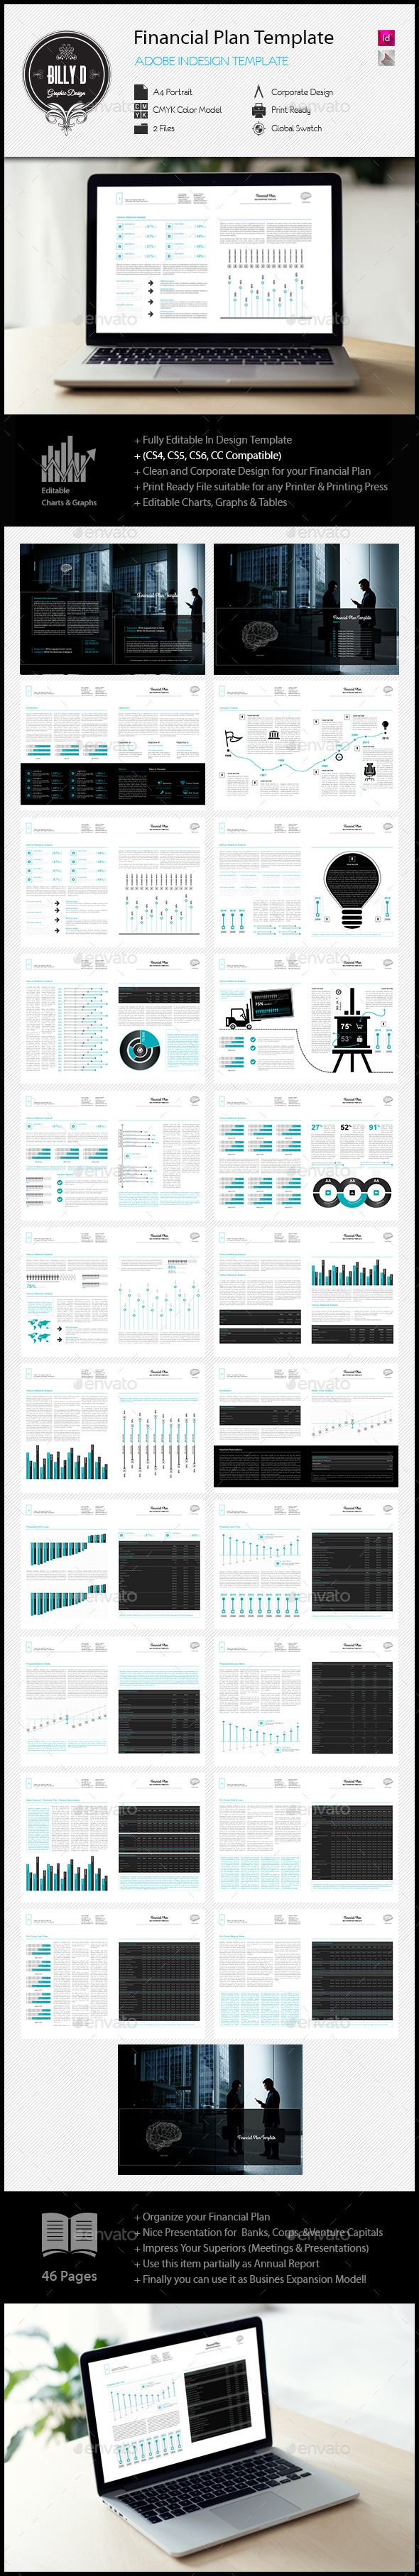 EFinancial Plan Template  Financial Plan Template Indesign